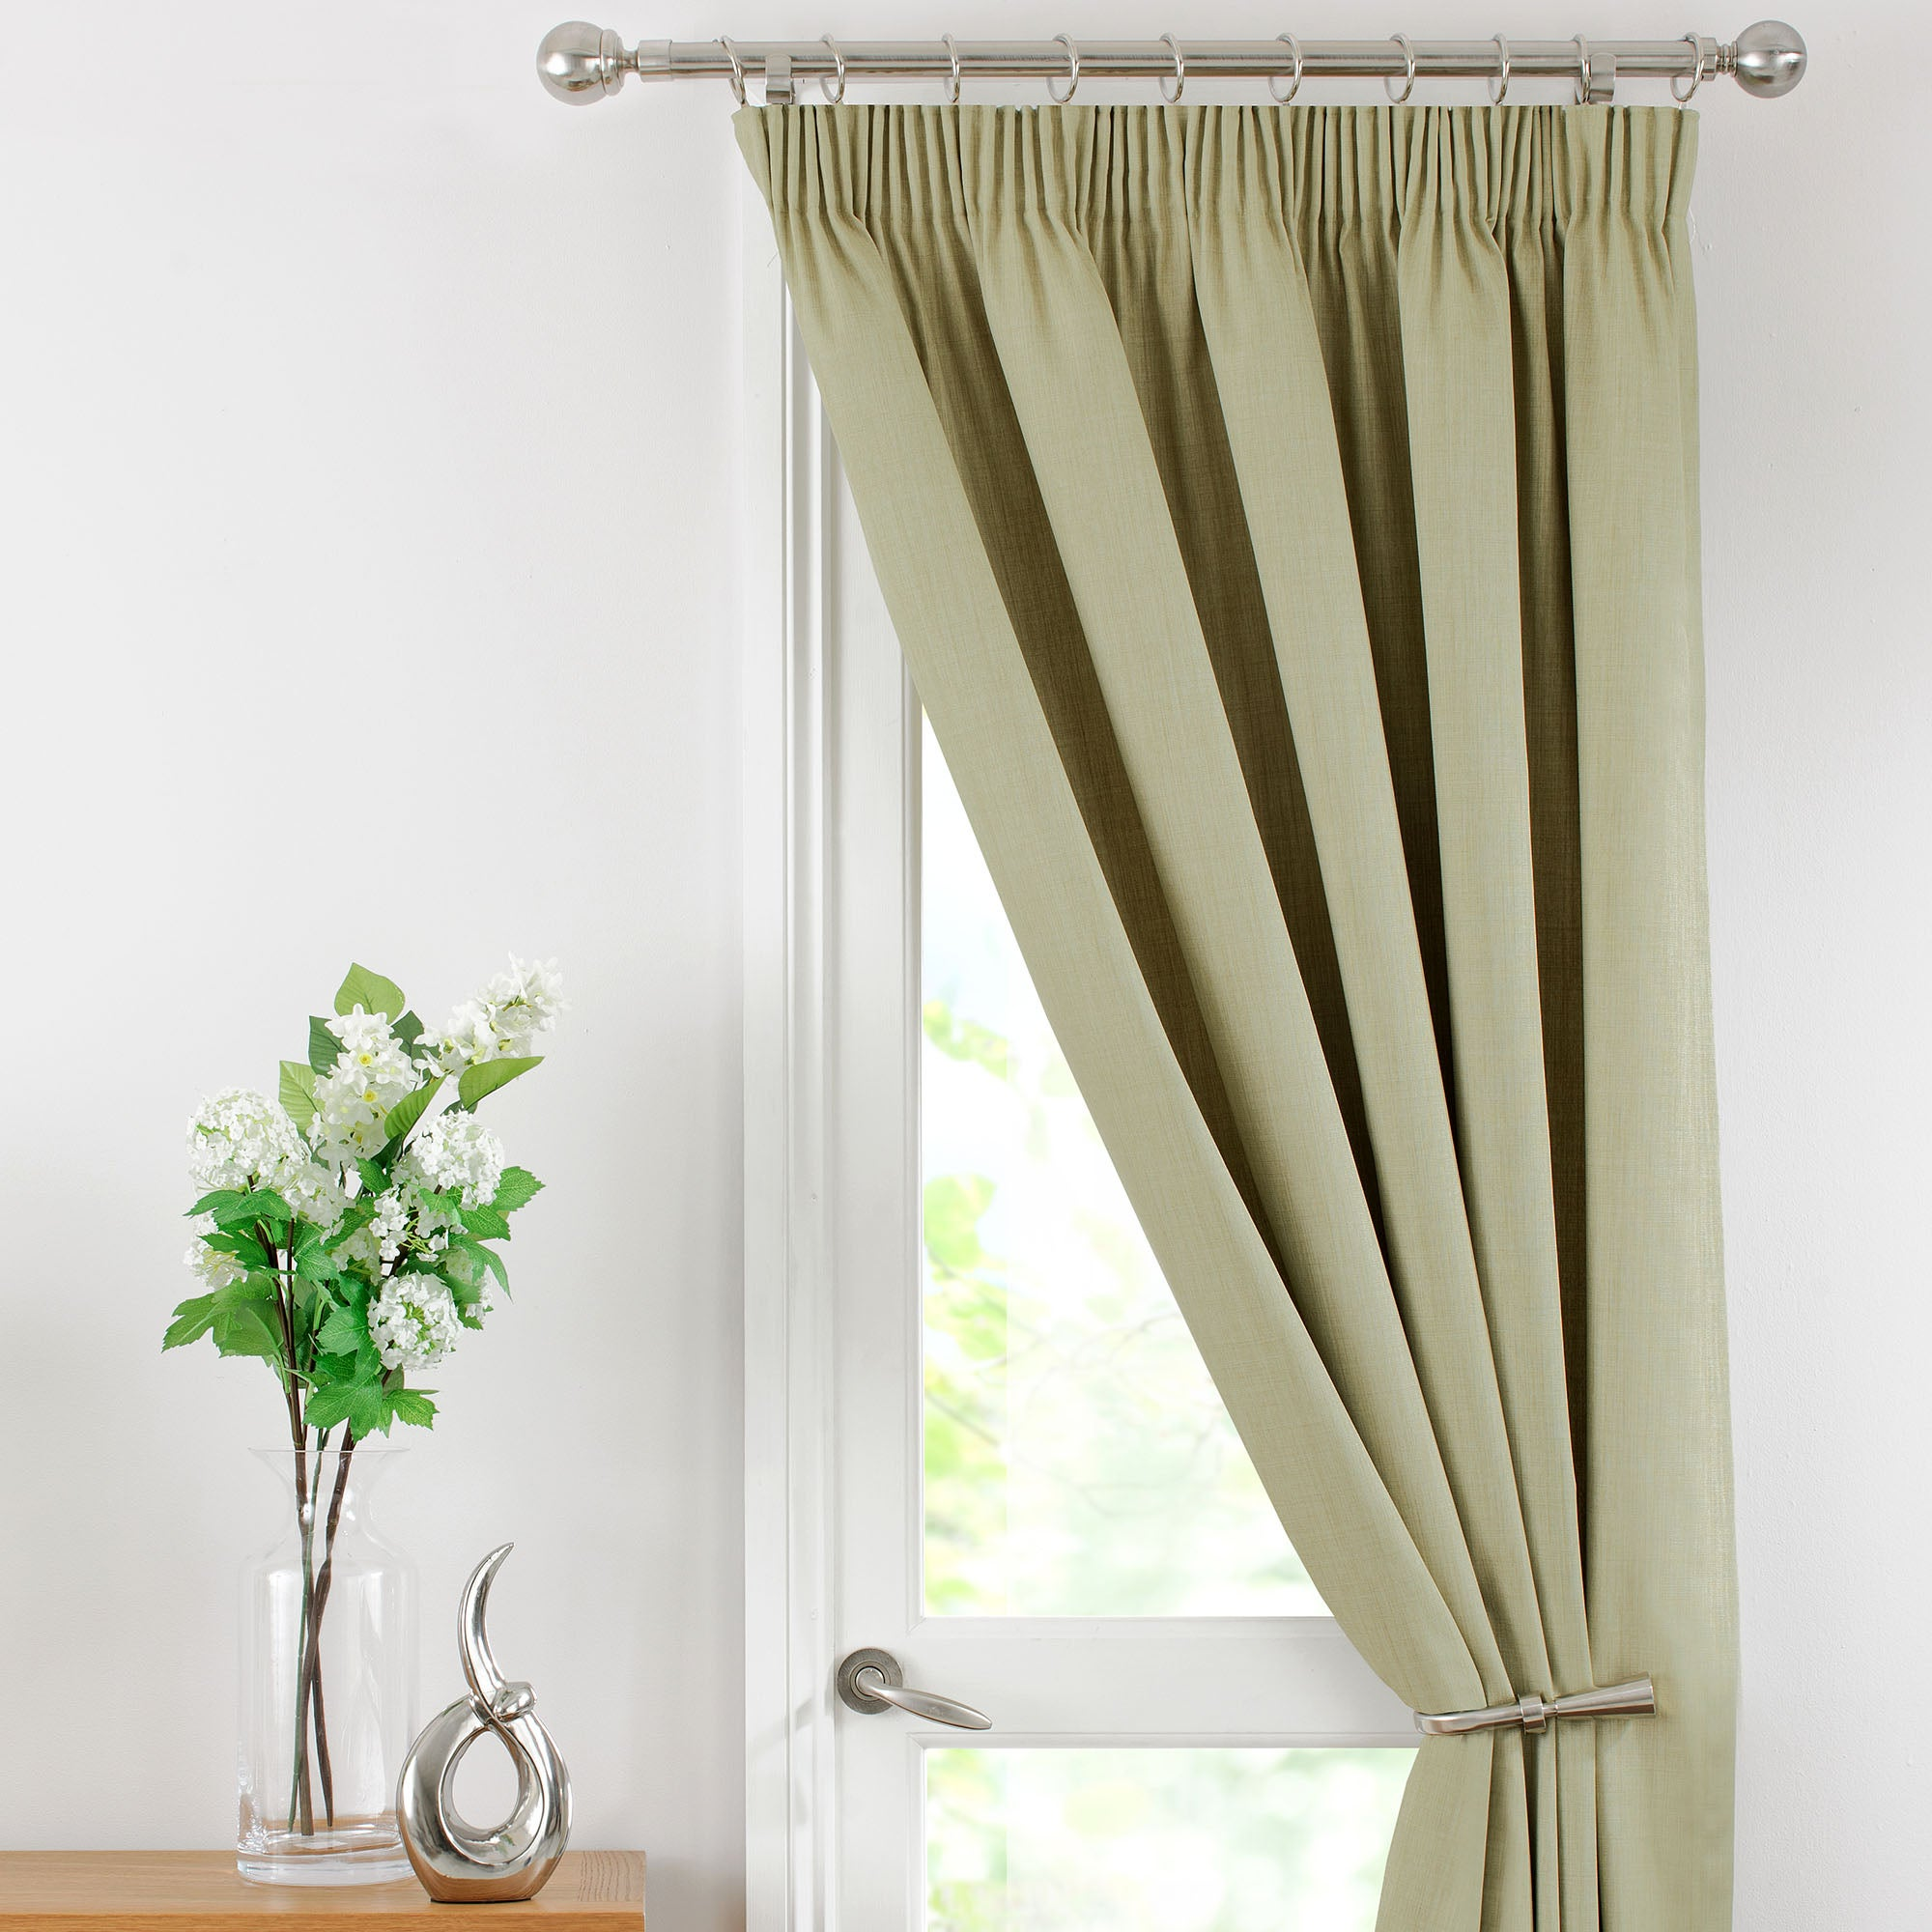 Green Thermal Pencil Pleat Solar Door Curtain